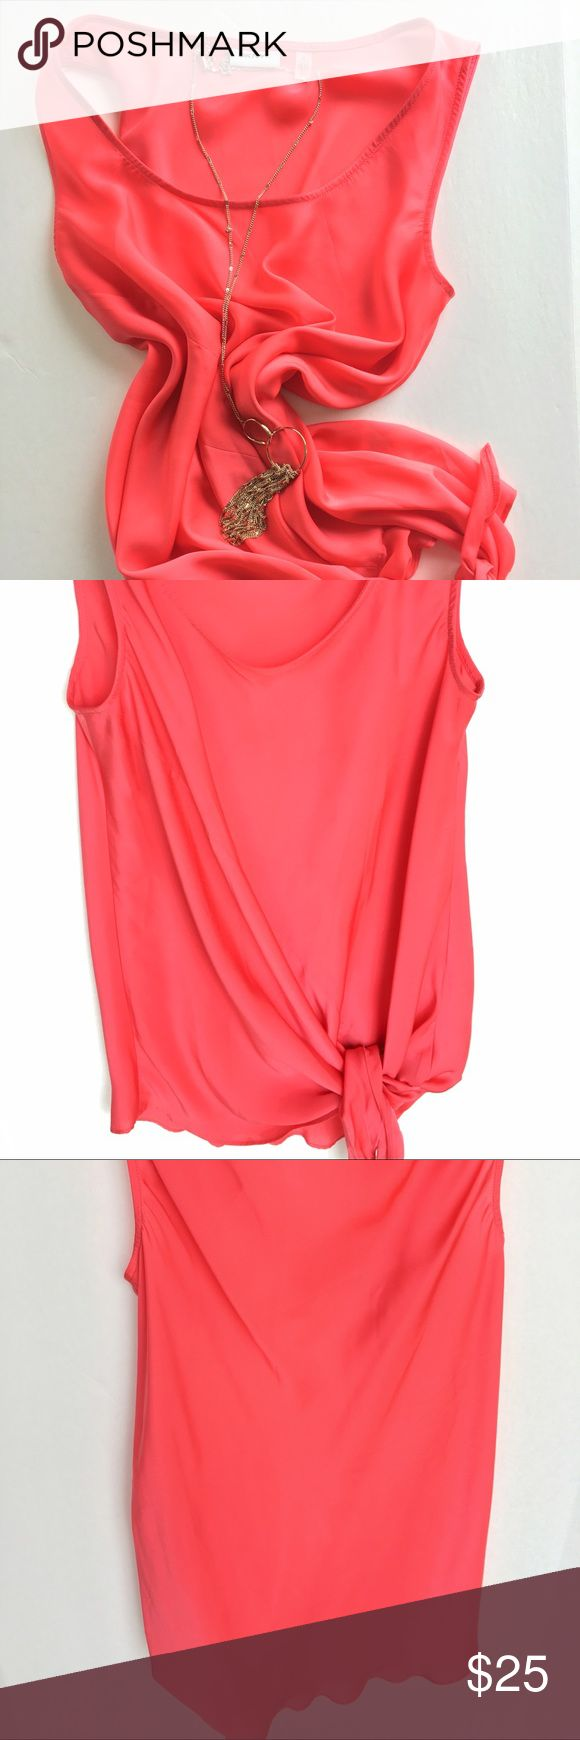 """DKNYC sleeveless blouse Classy! Gorgeous sleeveless blouse with tie on the side. Great color that pops. Like new. Shoulder to hem 27"""".  🚫 No Trades 💯% Authentic  💵 Offers welcome 💰Bundled discount 📦 Ships in 1-2 days DKNYC Tops Blouses"""